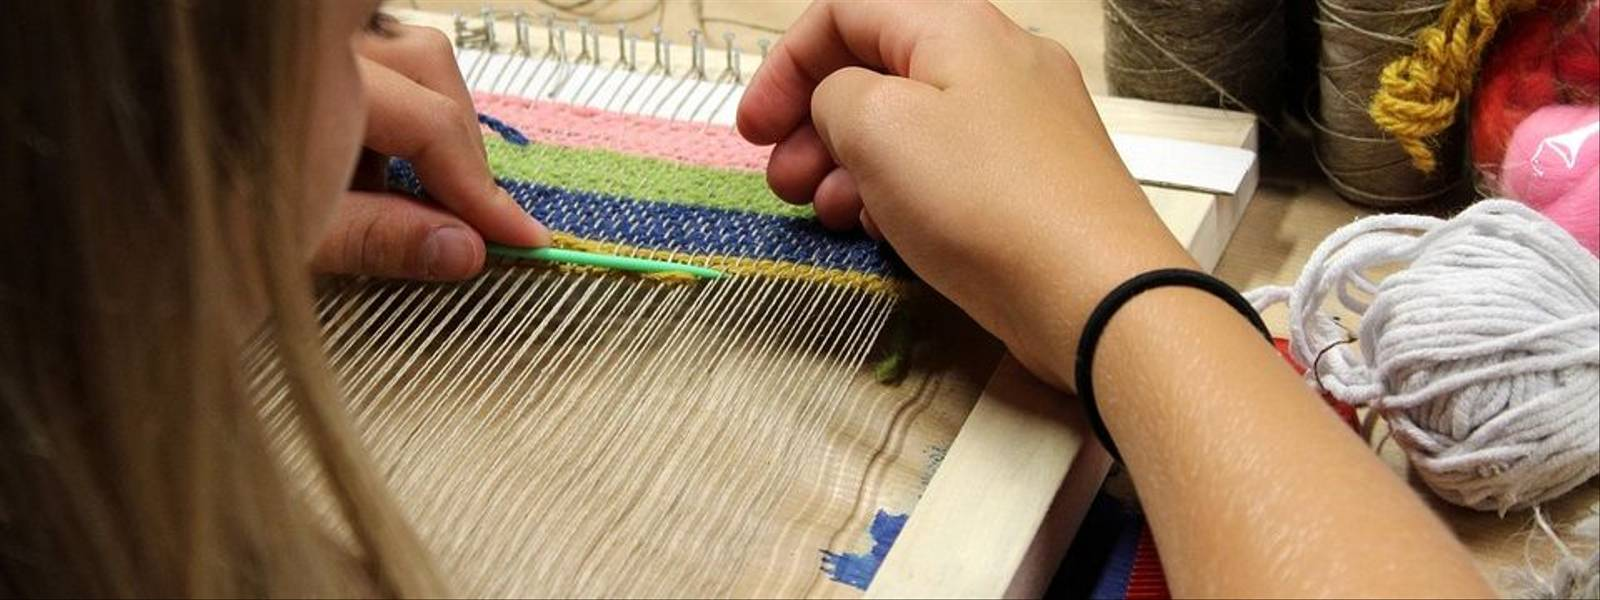 weaving-3559059_960_720 Pixabay.jpg